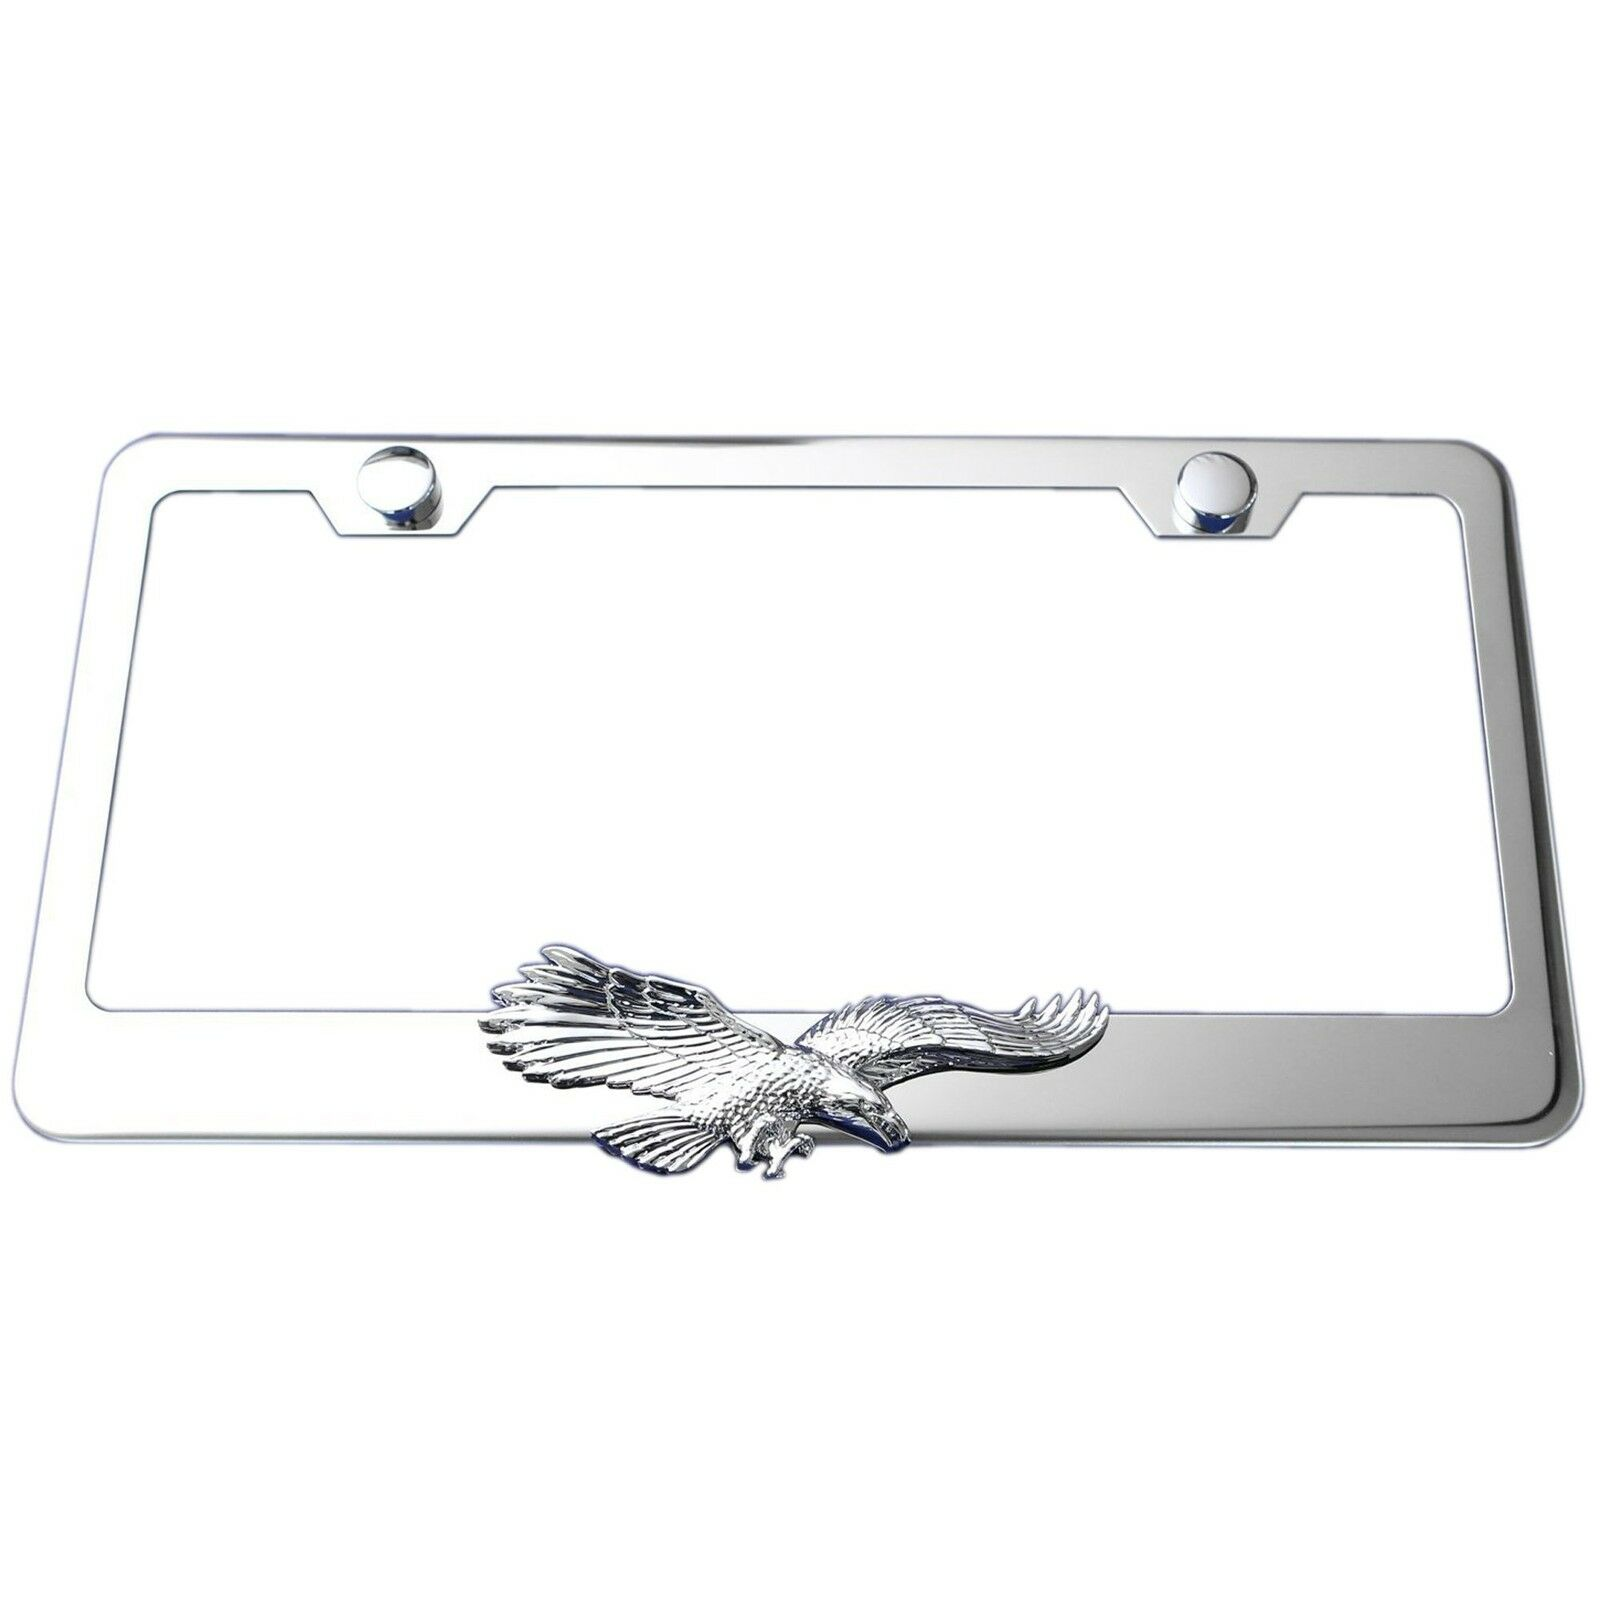 picture 1 of 3 - Eagle License Plate Frame